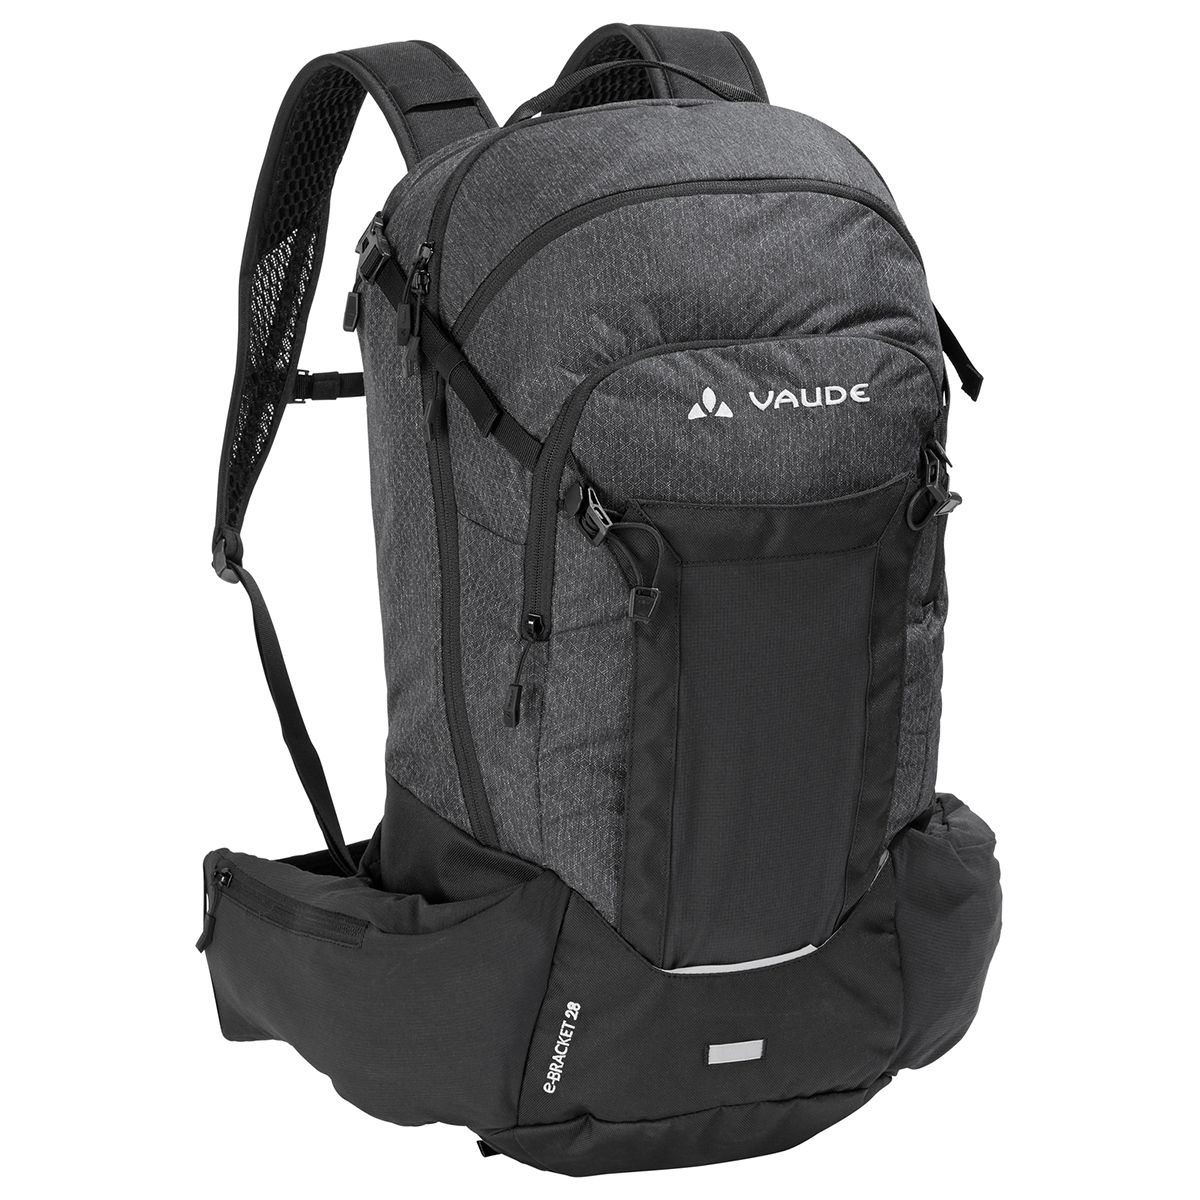 eBracket 28 bike backpack